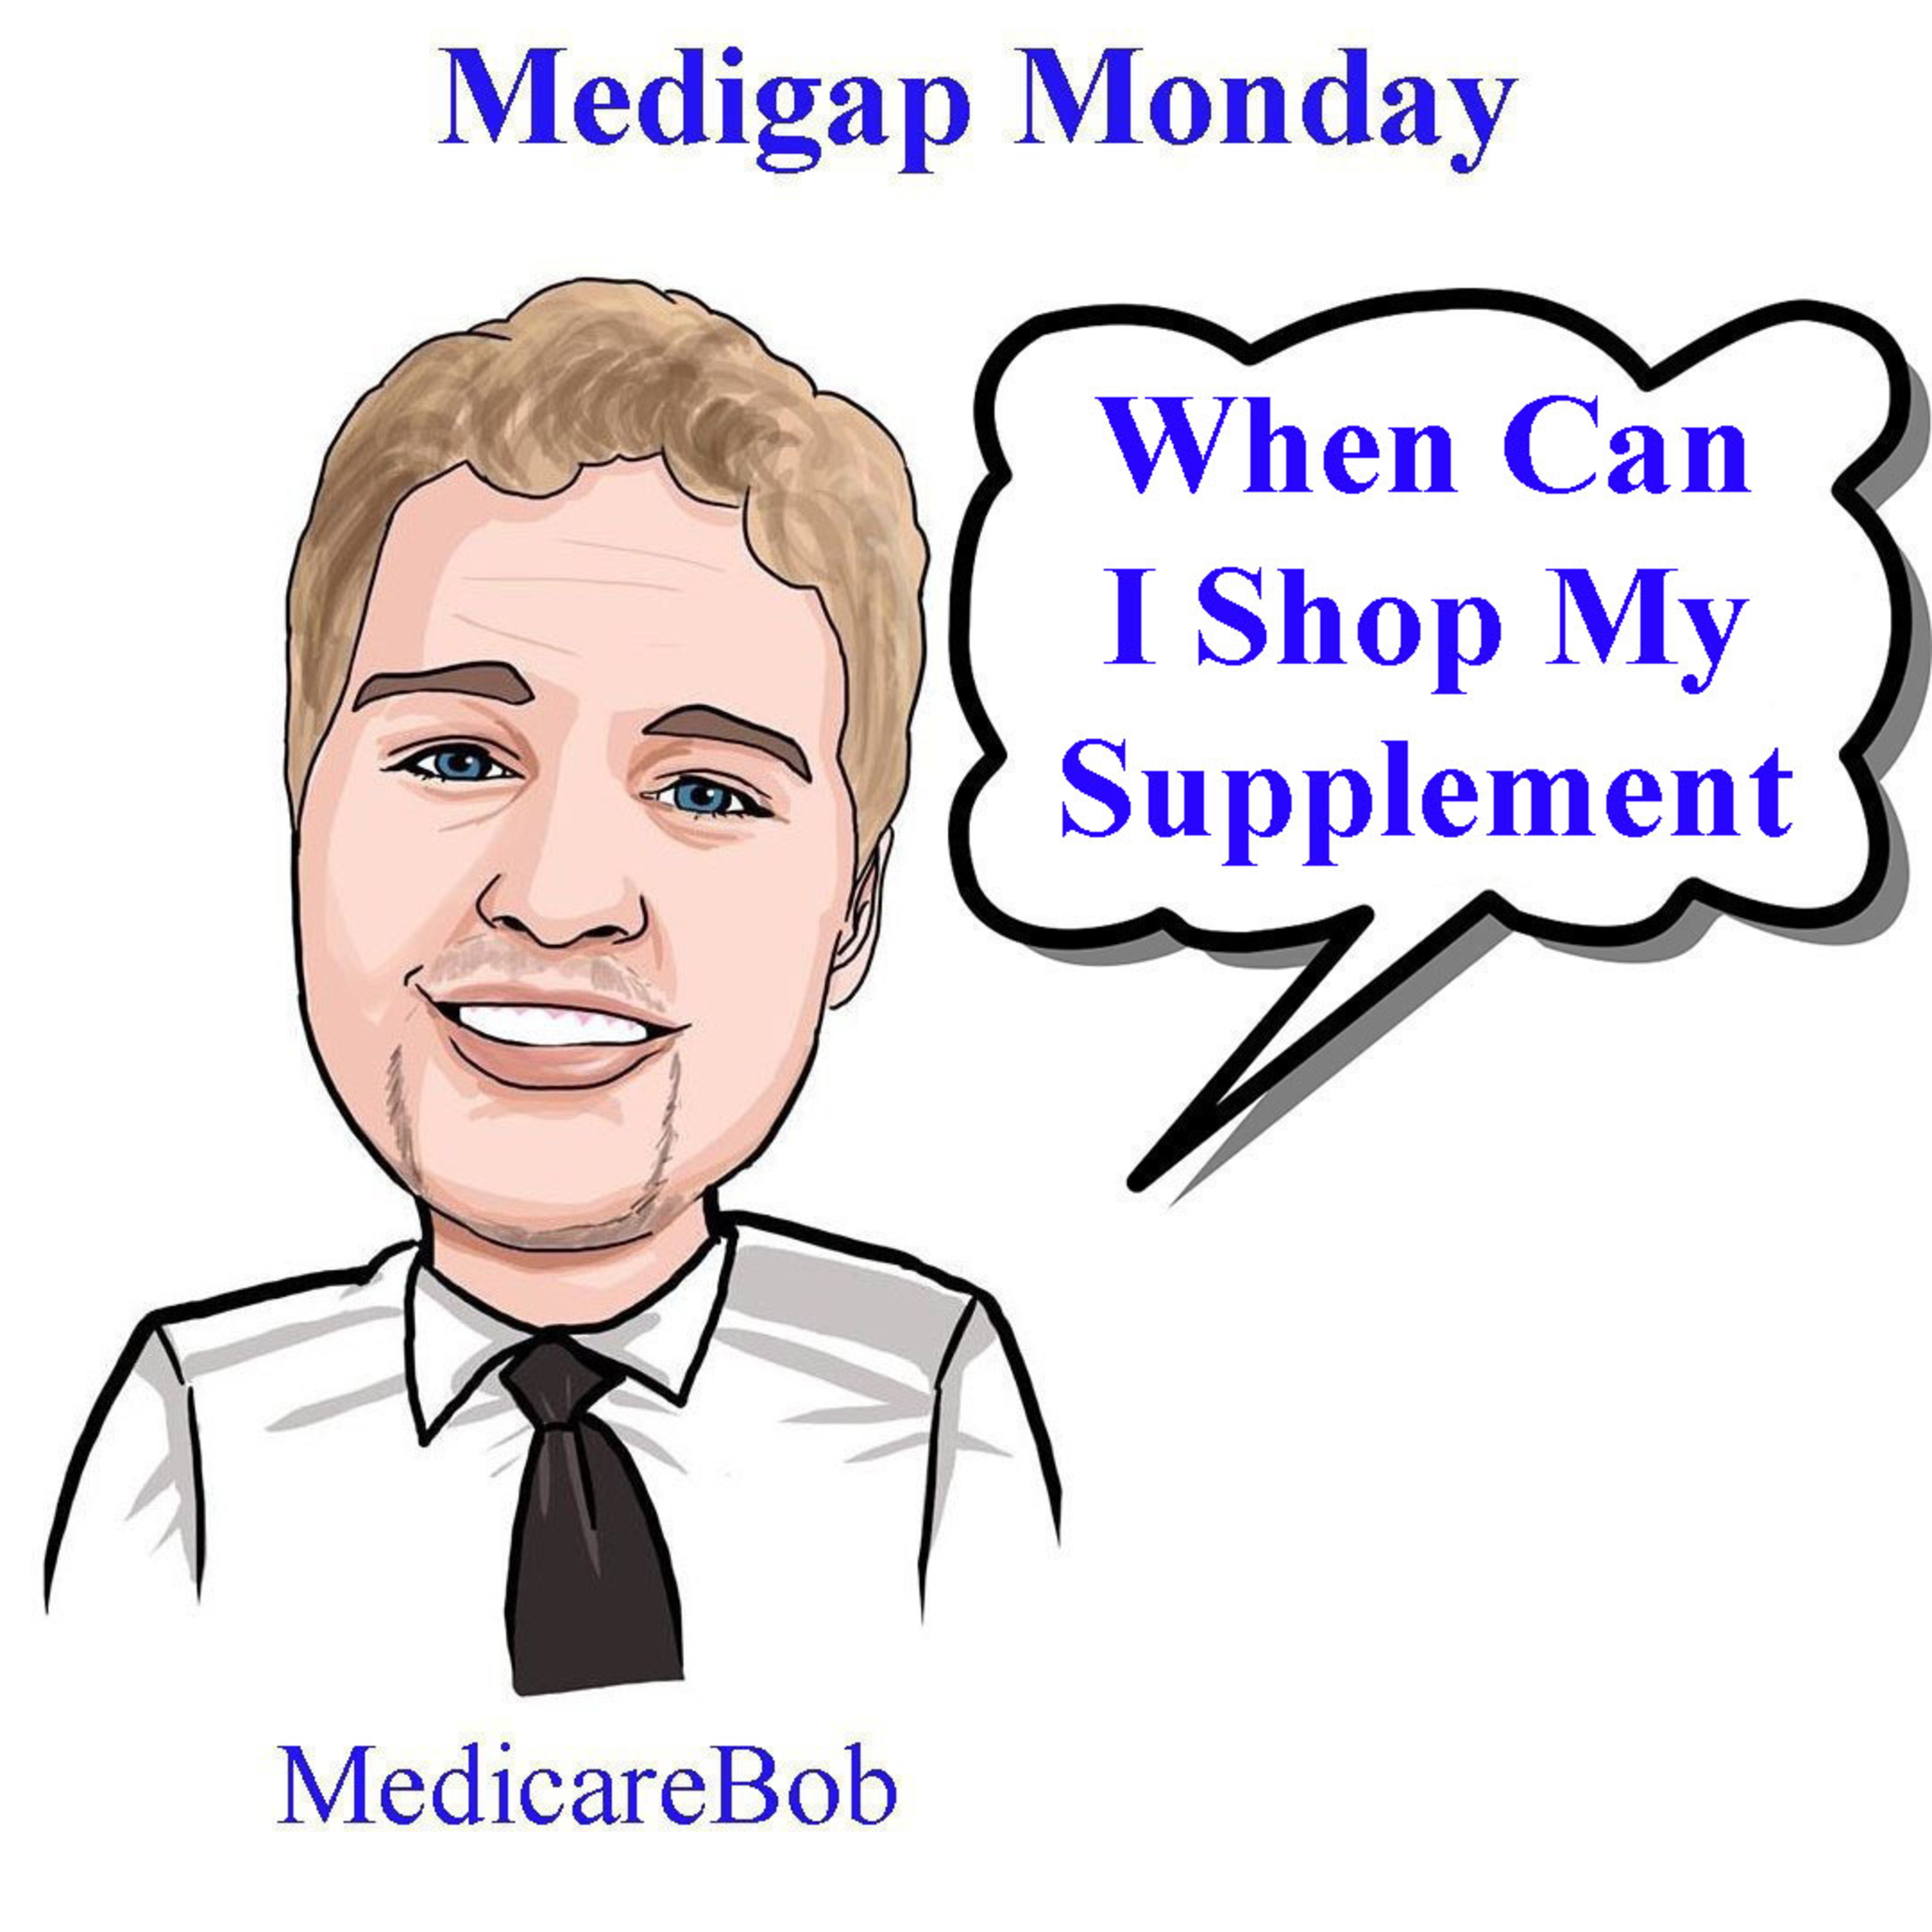 Medigap Monday: When Can I Shop My Medicare Supplement Plan?